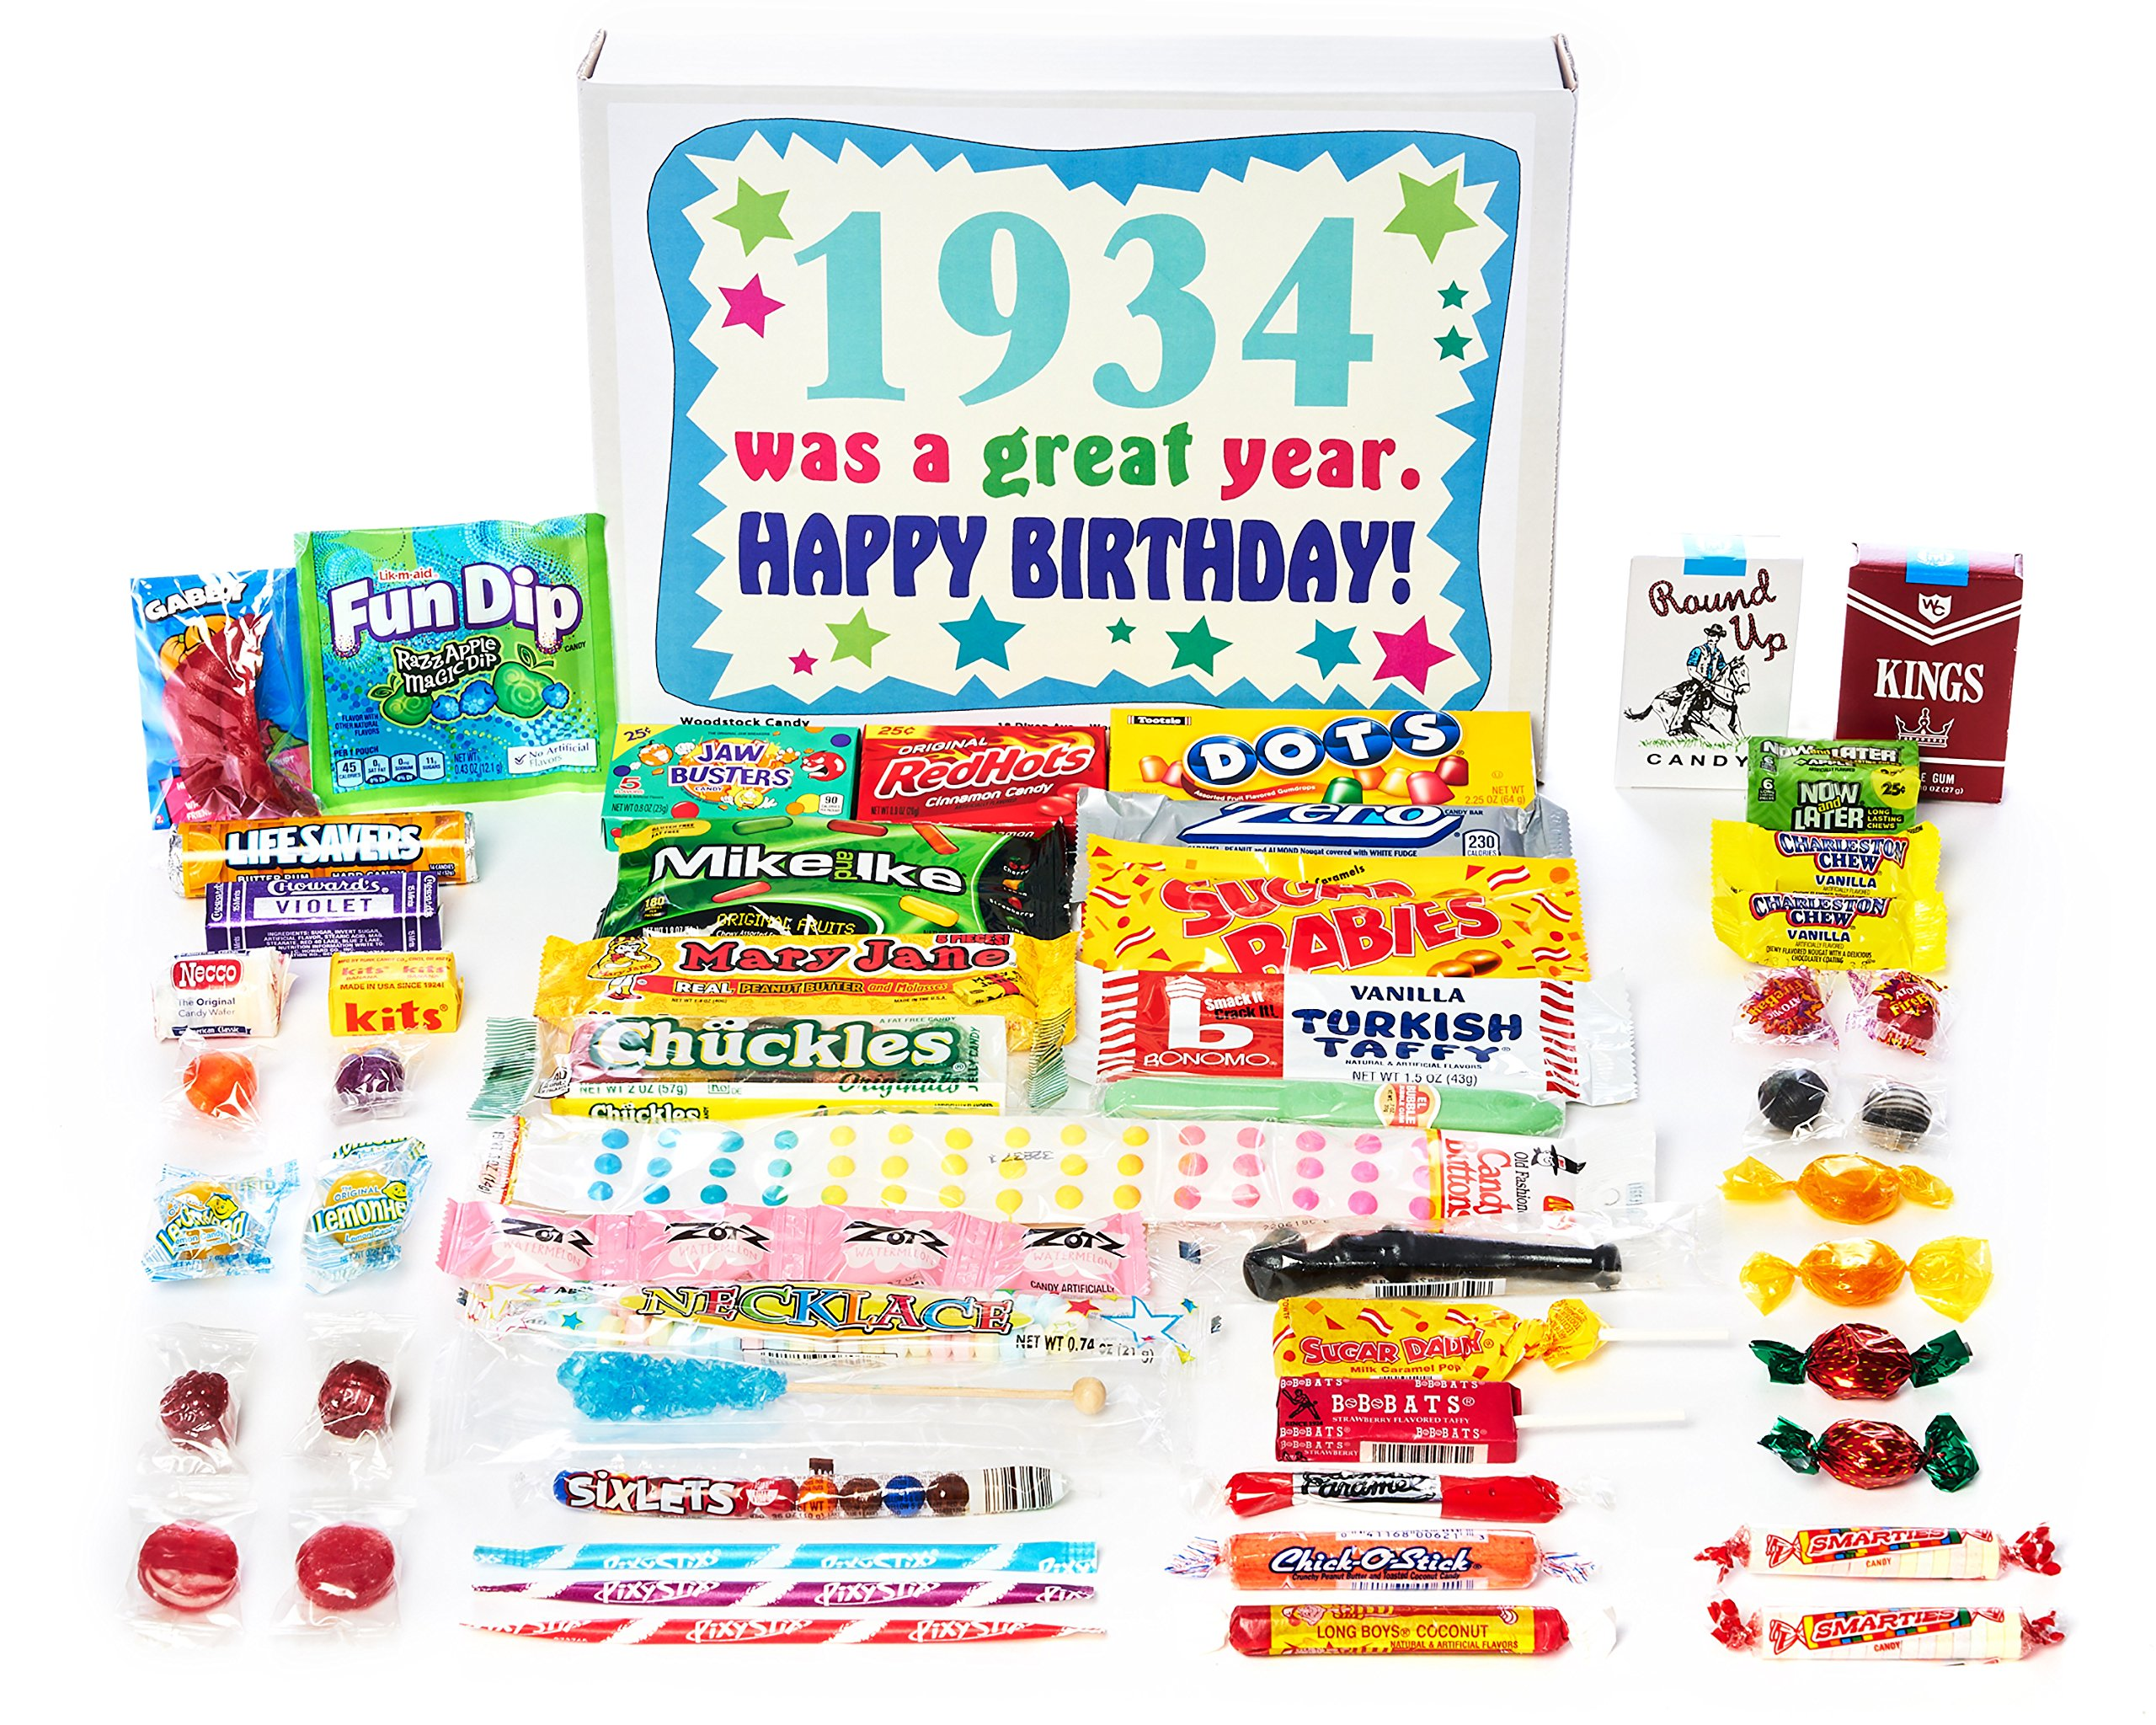 Woodstock Candy ~ 1934 85th Birthday Gift Box of Nostalgic Retro Candy Mix from Childhood for 85 Year Old Man or Woman Born 1934